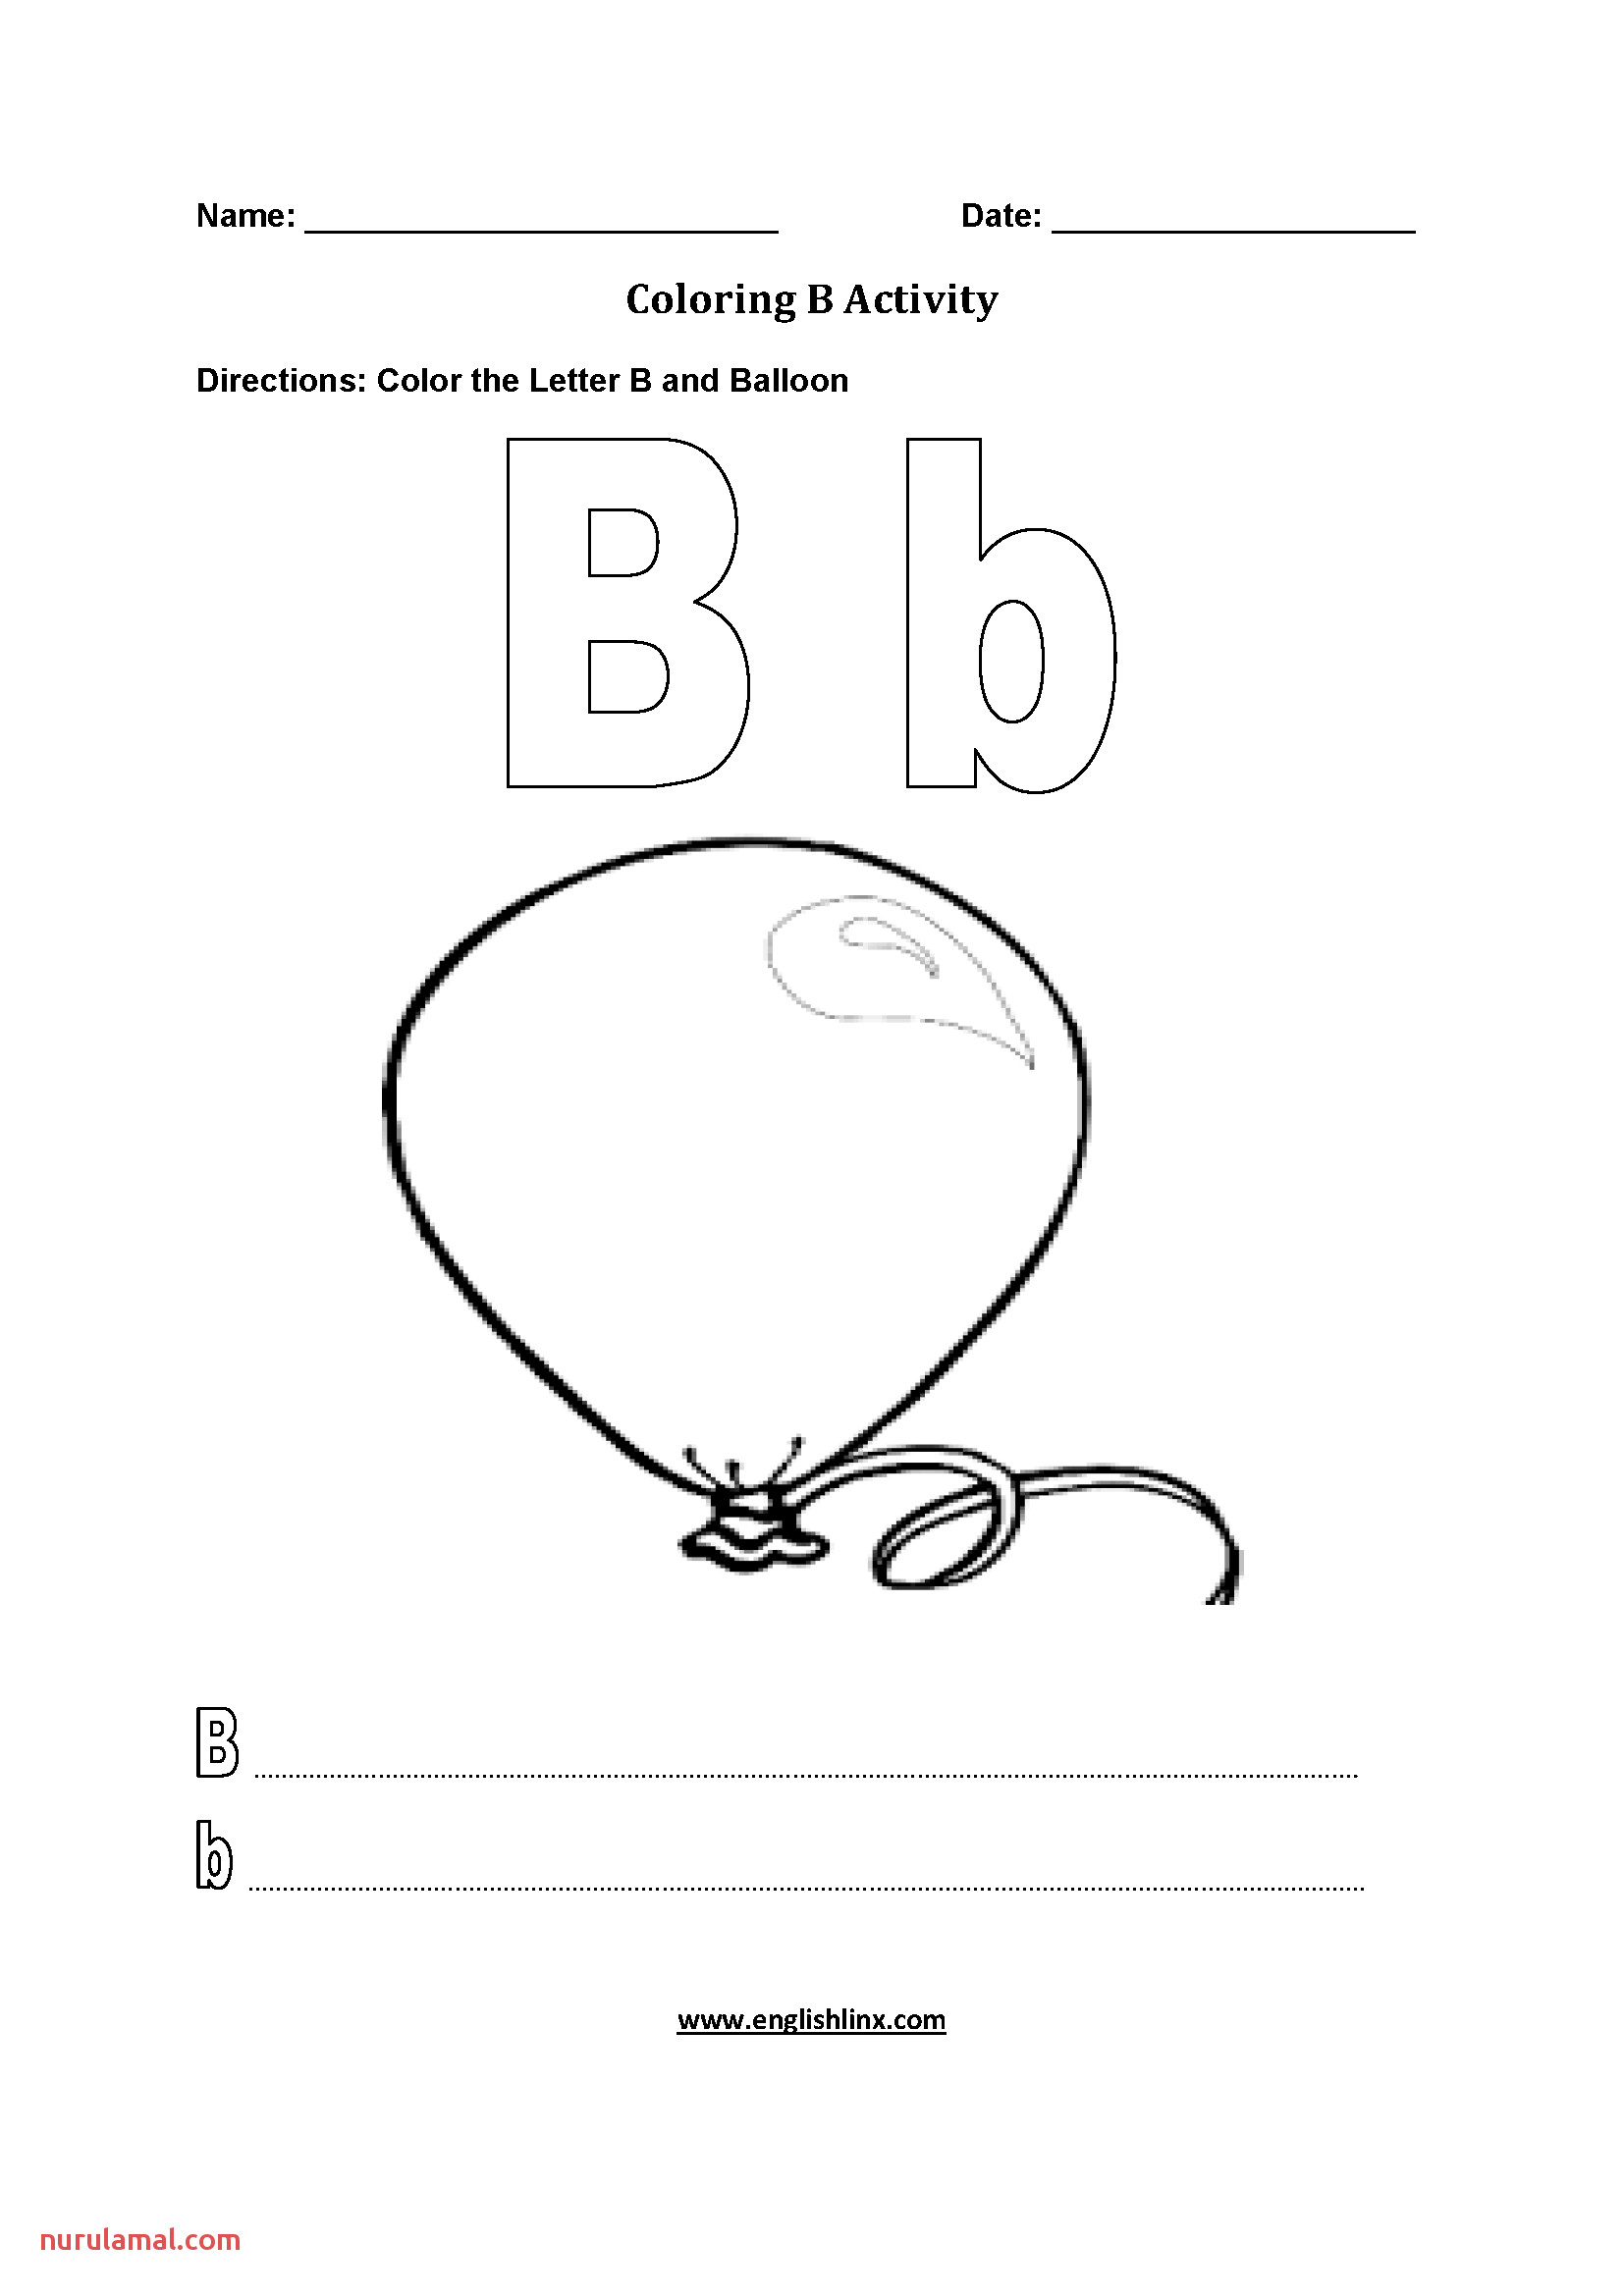 Coloring B Worksheet